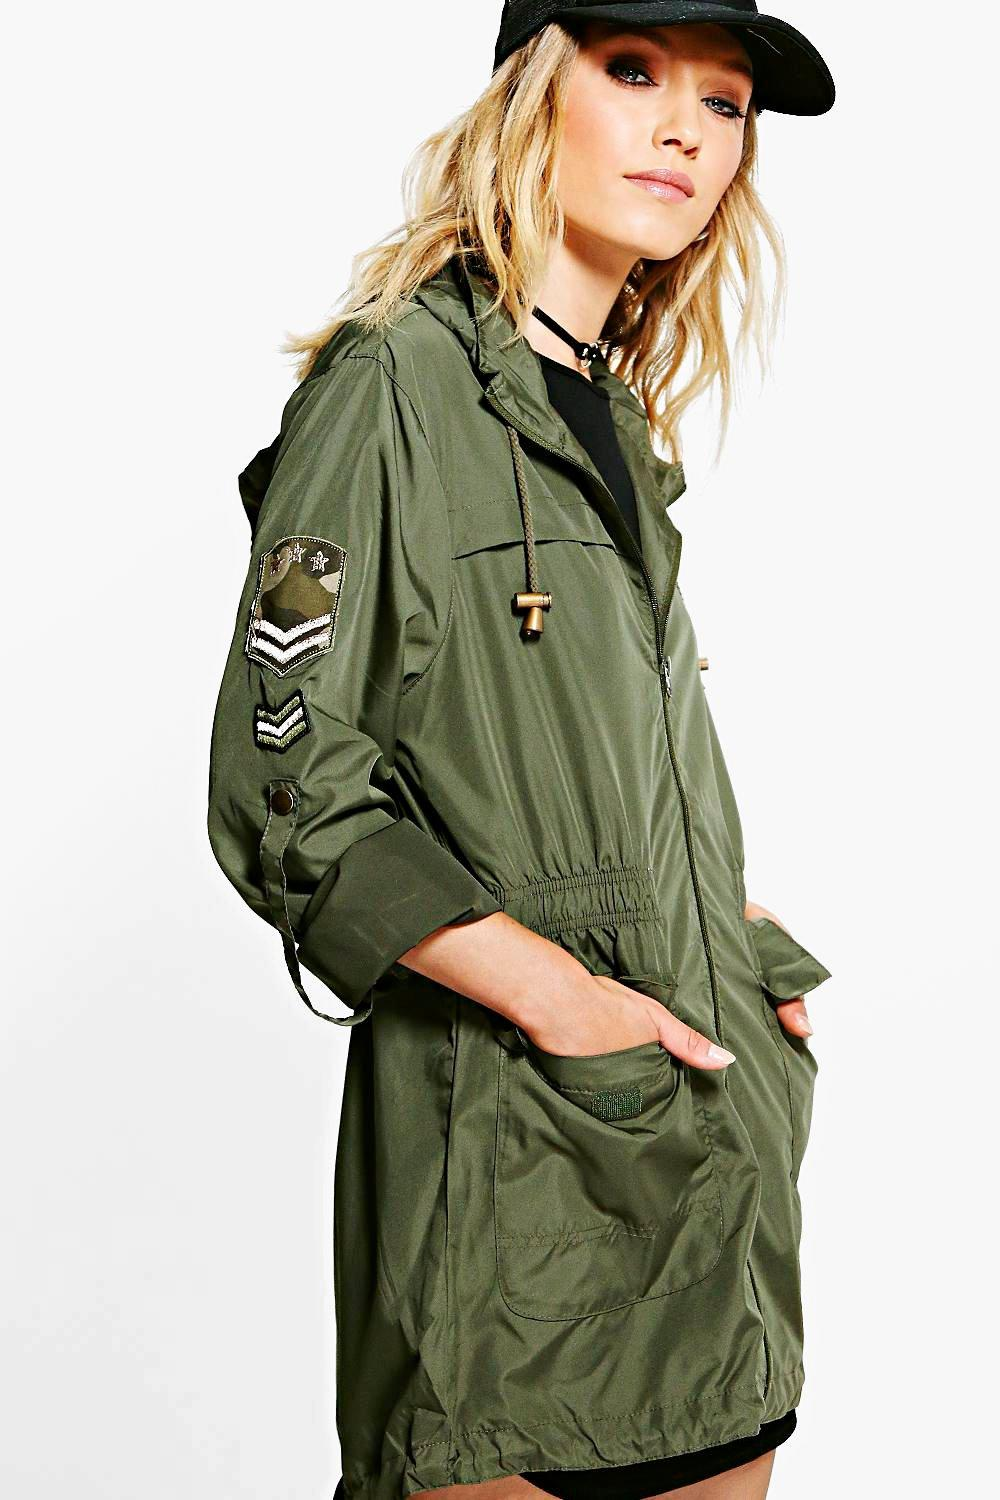 Shop the latest styles of Womens Raincoat Coats at Macys. Check out our designer collection of chic coats including peacoats, trench coats, puffer coats and more! Macy's Presents: The Edit - A curated mix of fashion and inspiration Check It Out.